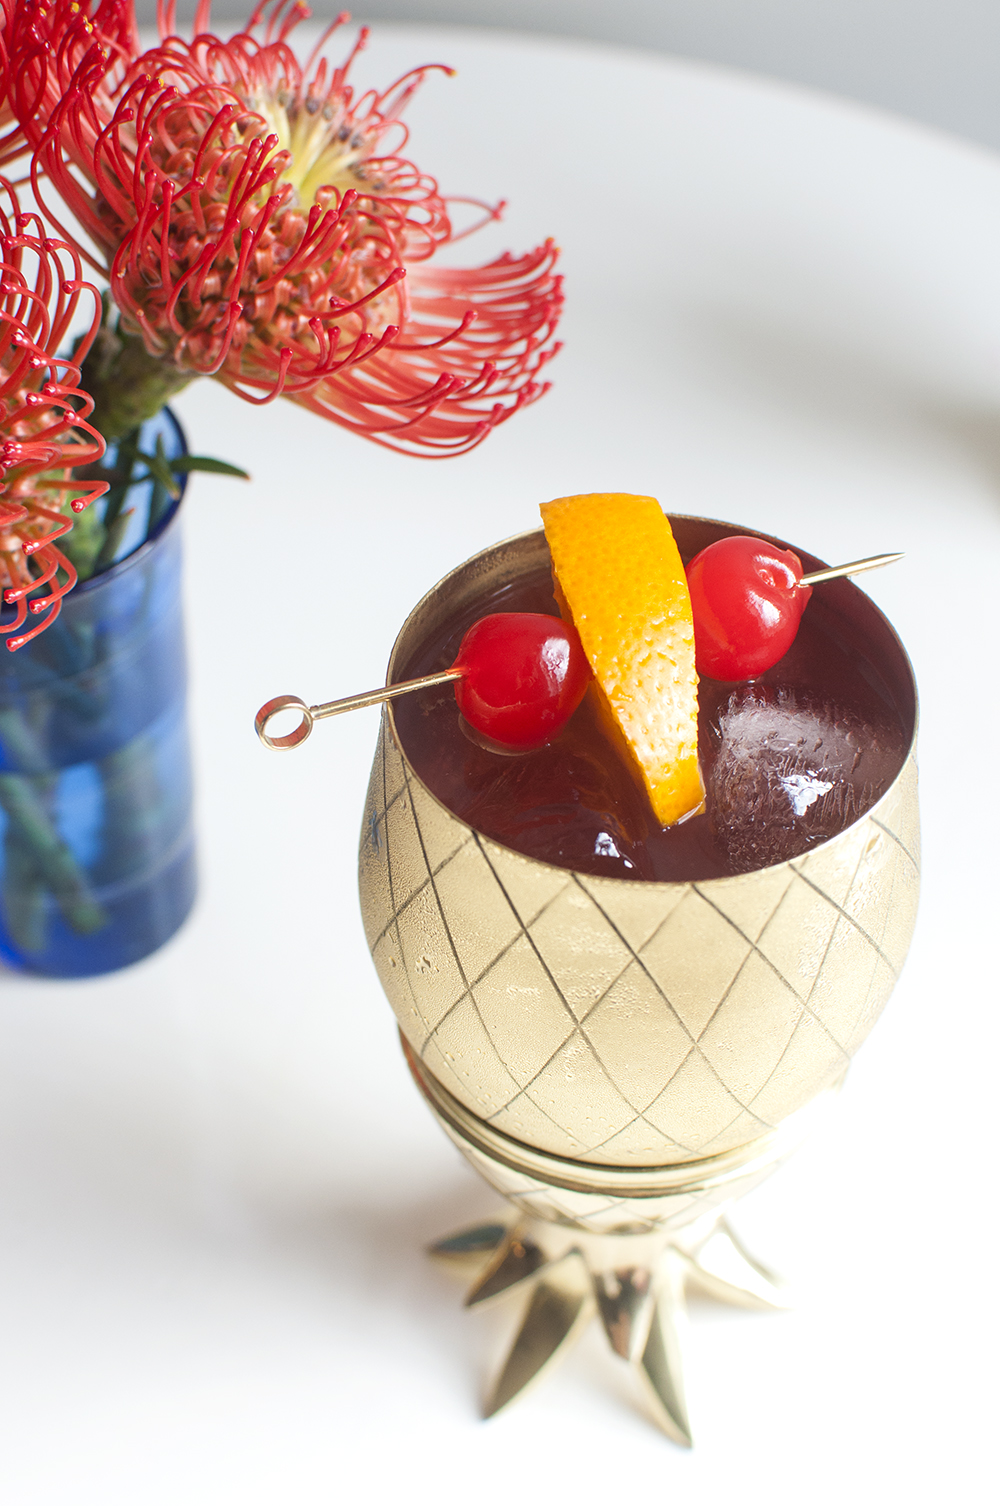 Planter's Punch Cocktail Recipe